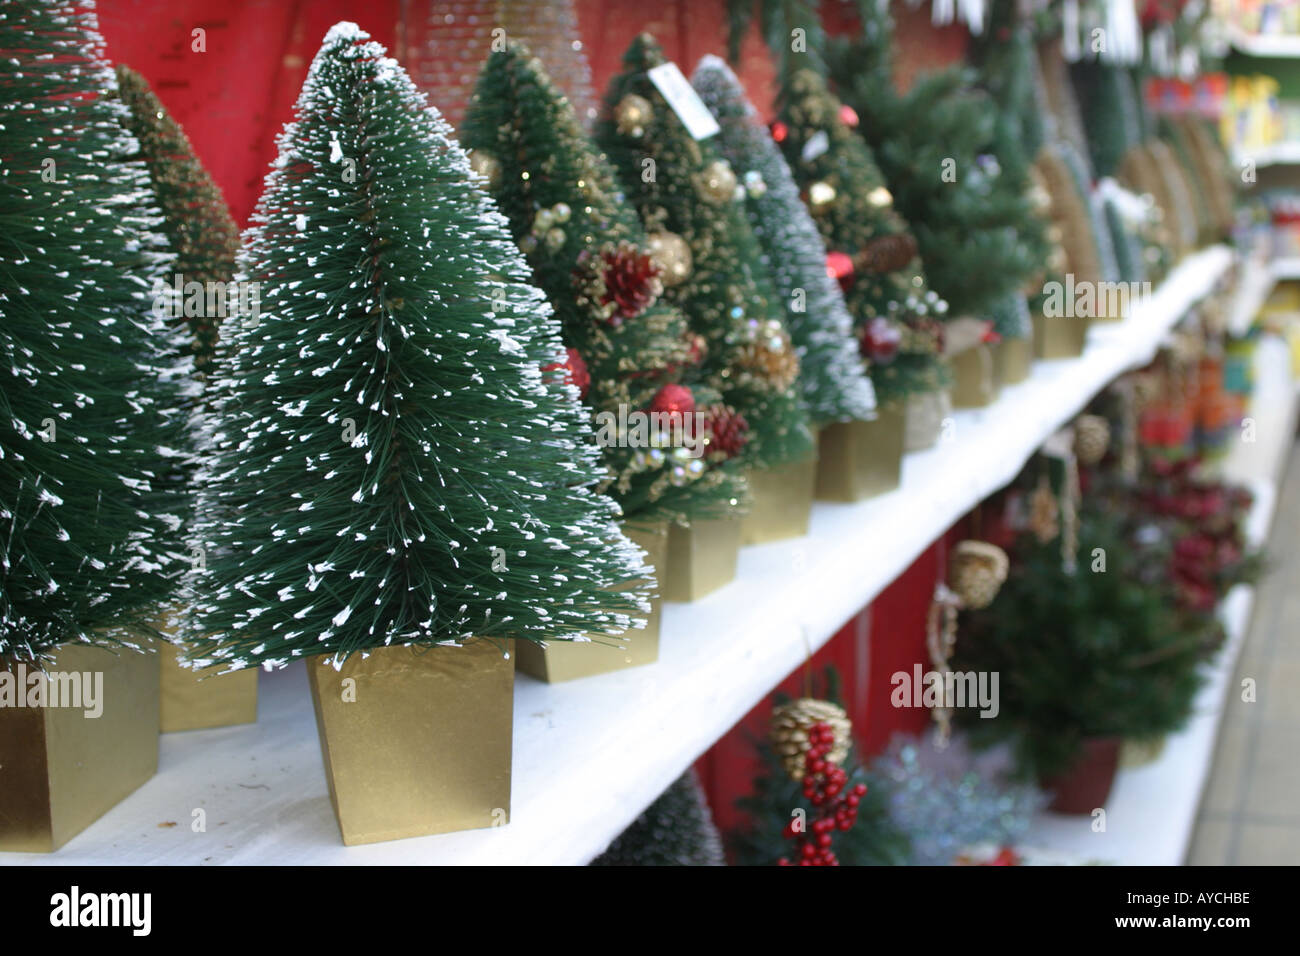 Artificial Christmas Trees For Sale